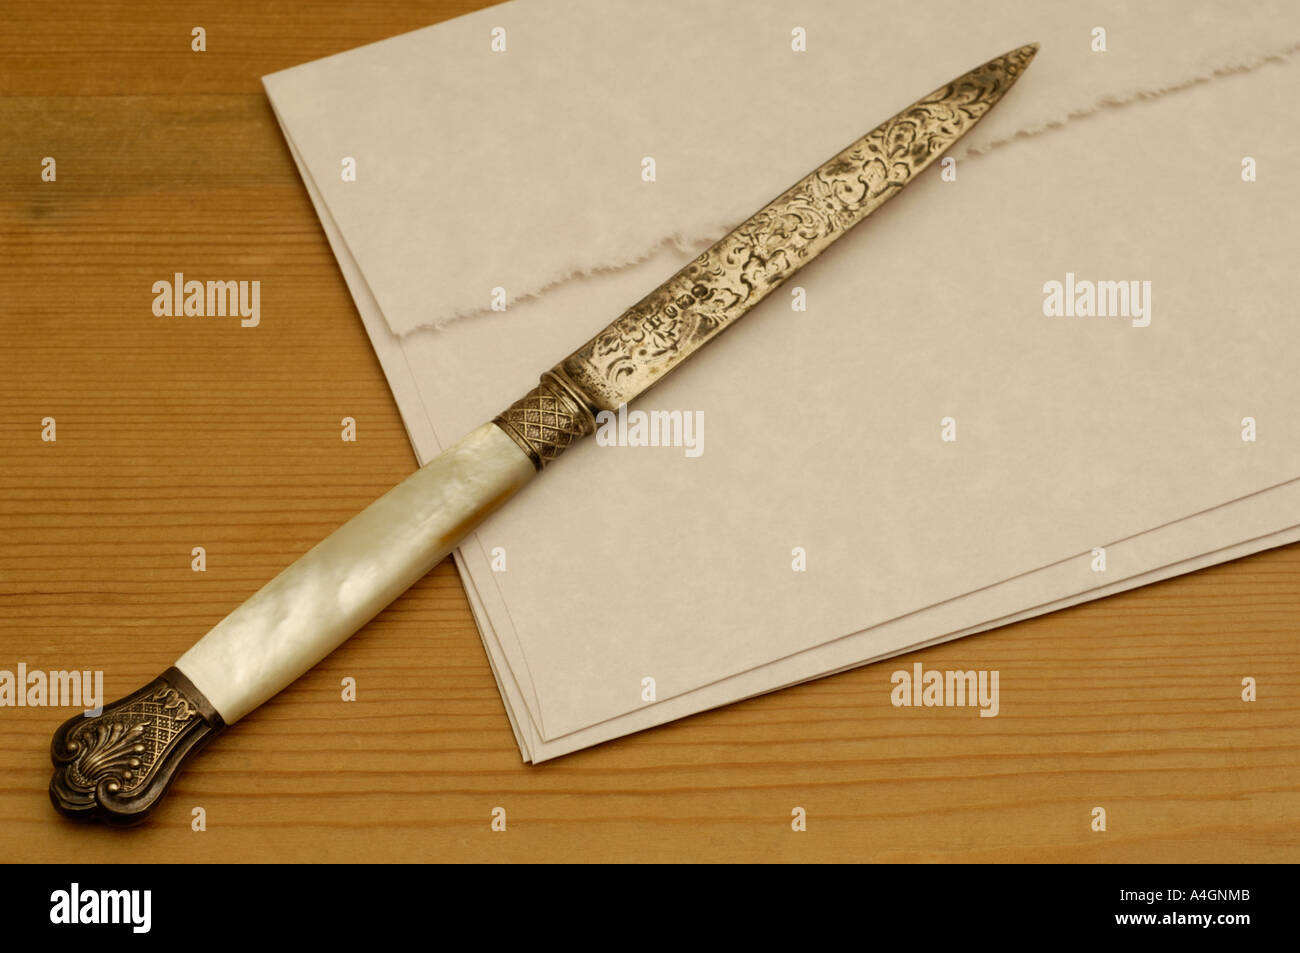 antique letter opener and stationary - Stock Image